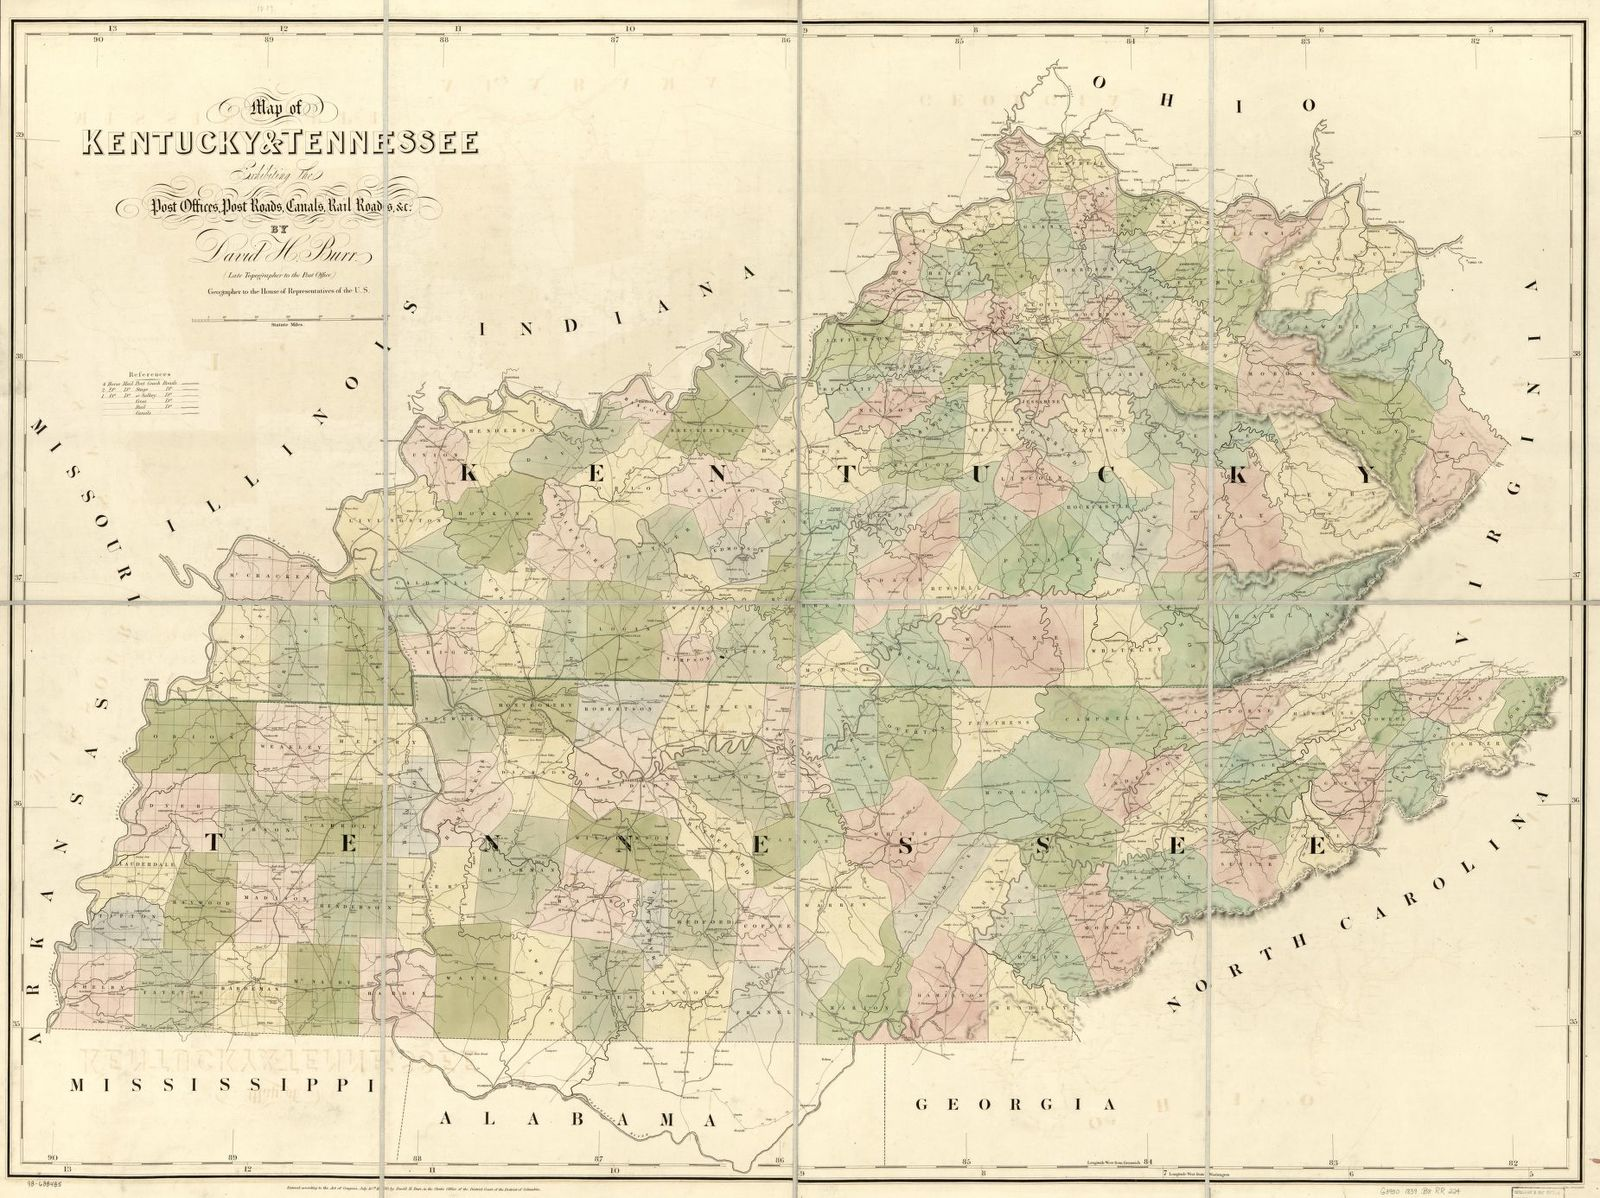 Map of Kentucky & Tennessee exhitibing the post offices, post roads, canals, rail roads, &c.; by David. H. Burr (Late topographer to the Post Office,) Geographer to the House of Representatives of the U.S.